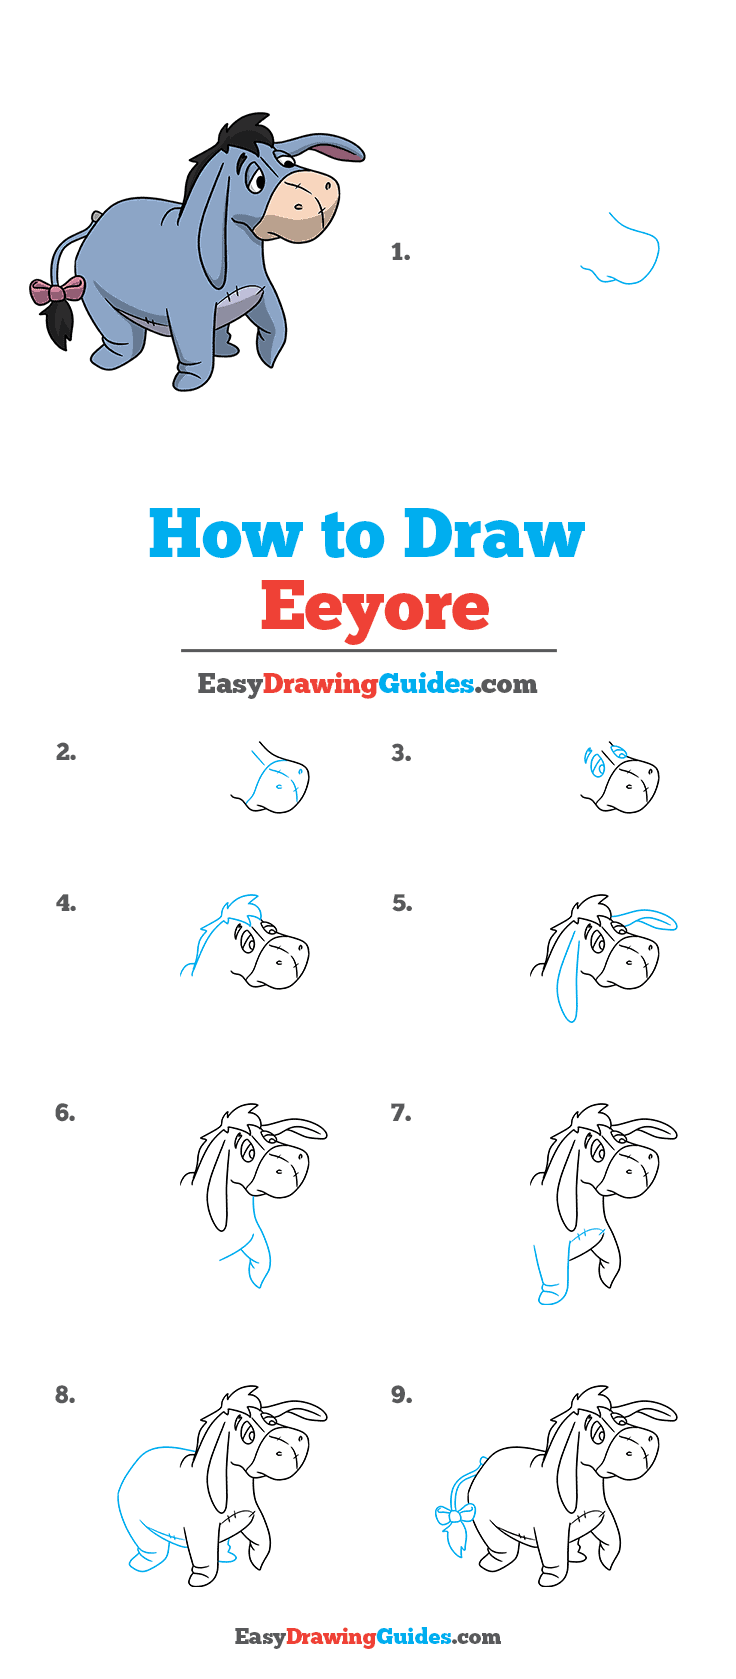 How to Draw Eeyore Step by Step Tutorial Image